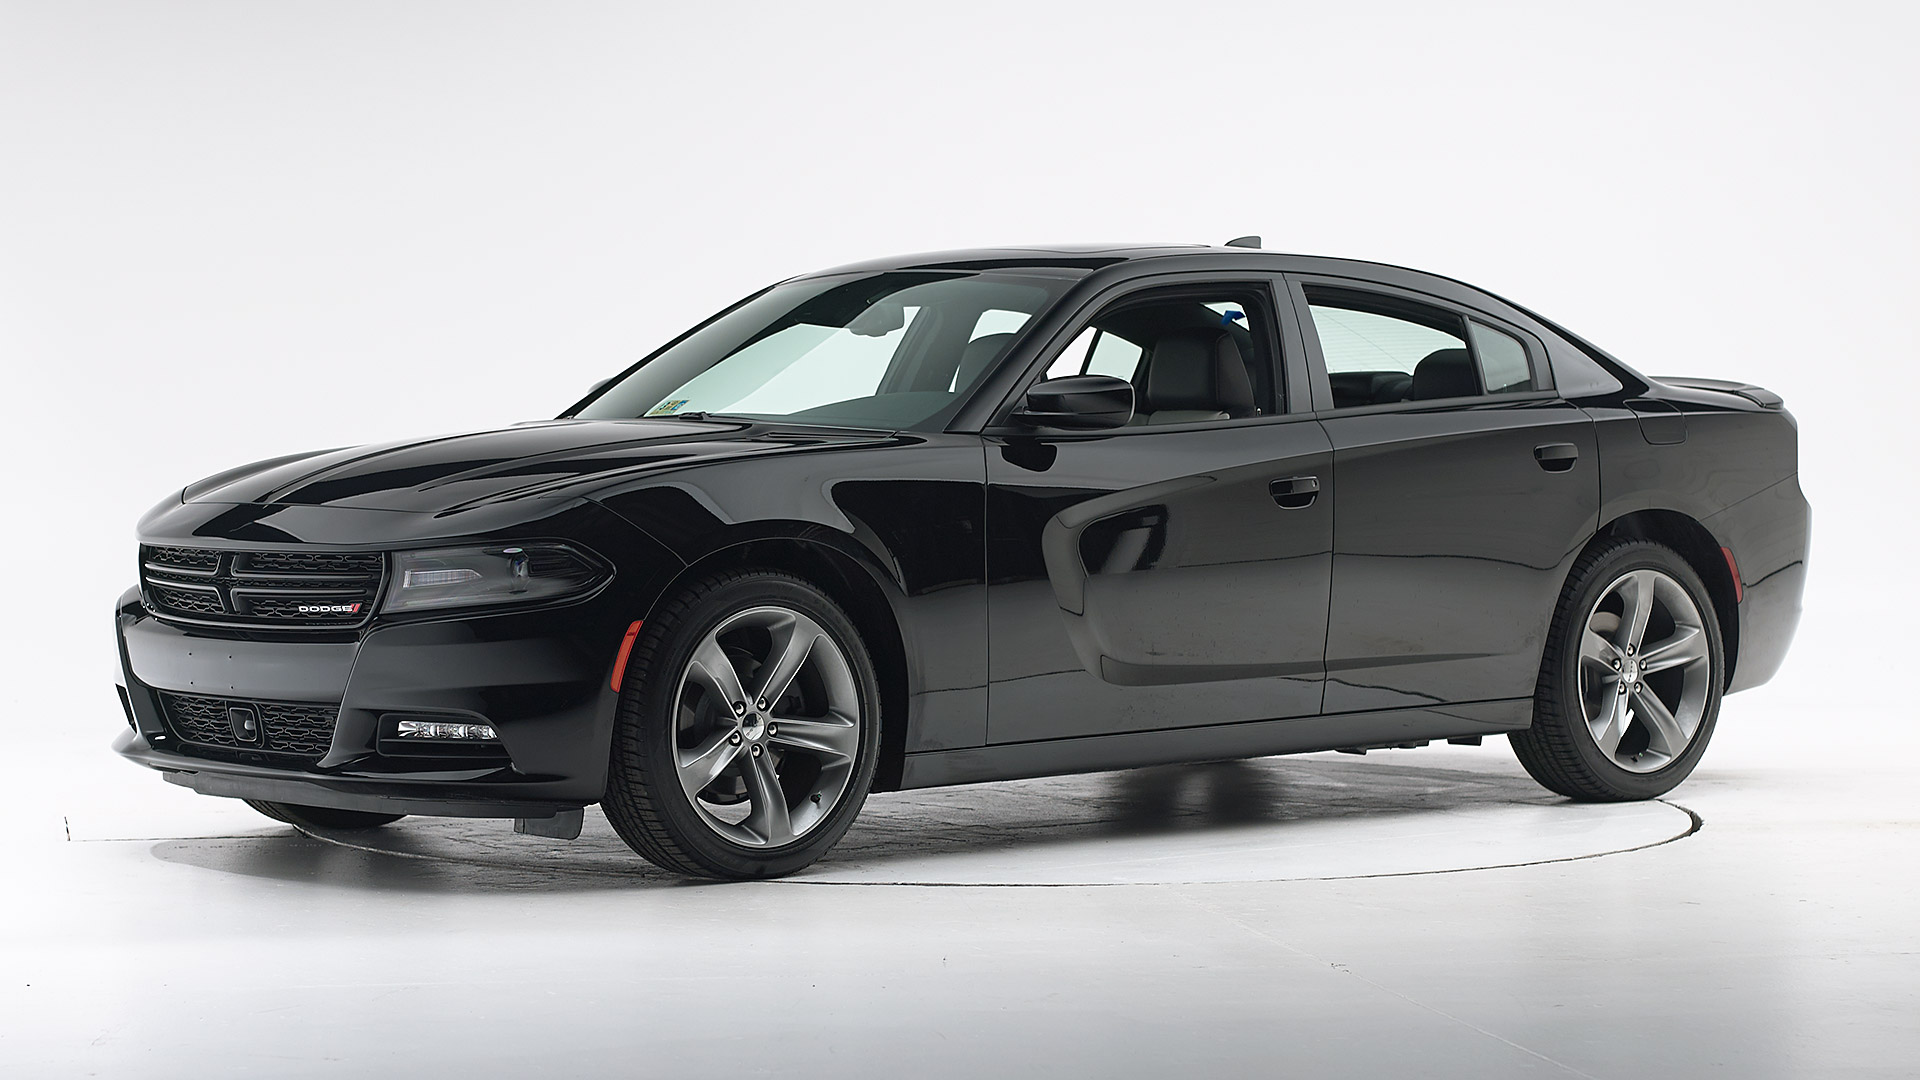 2017 Dodge Charger 4-door sedan